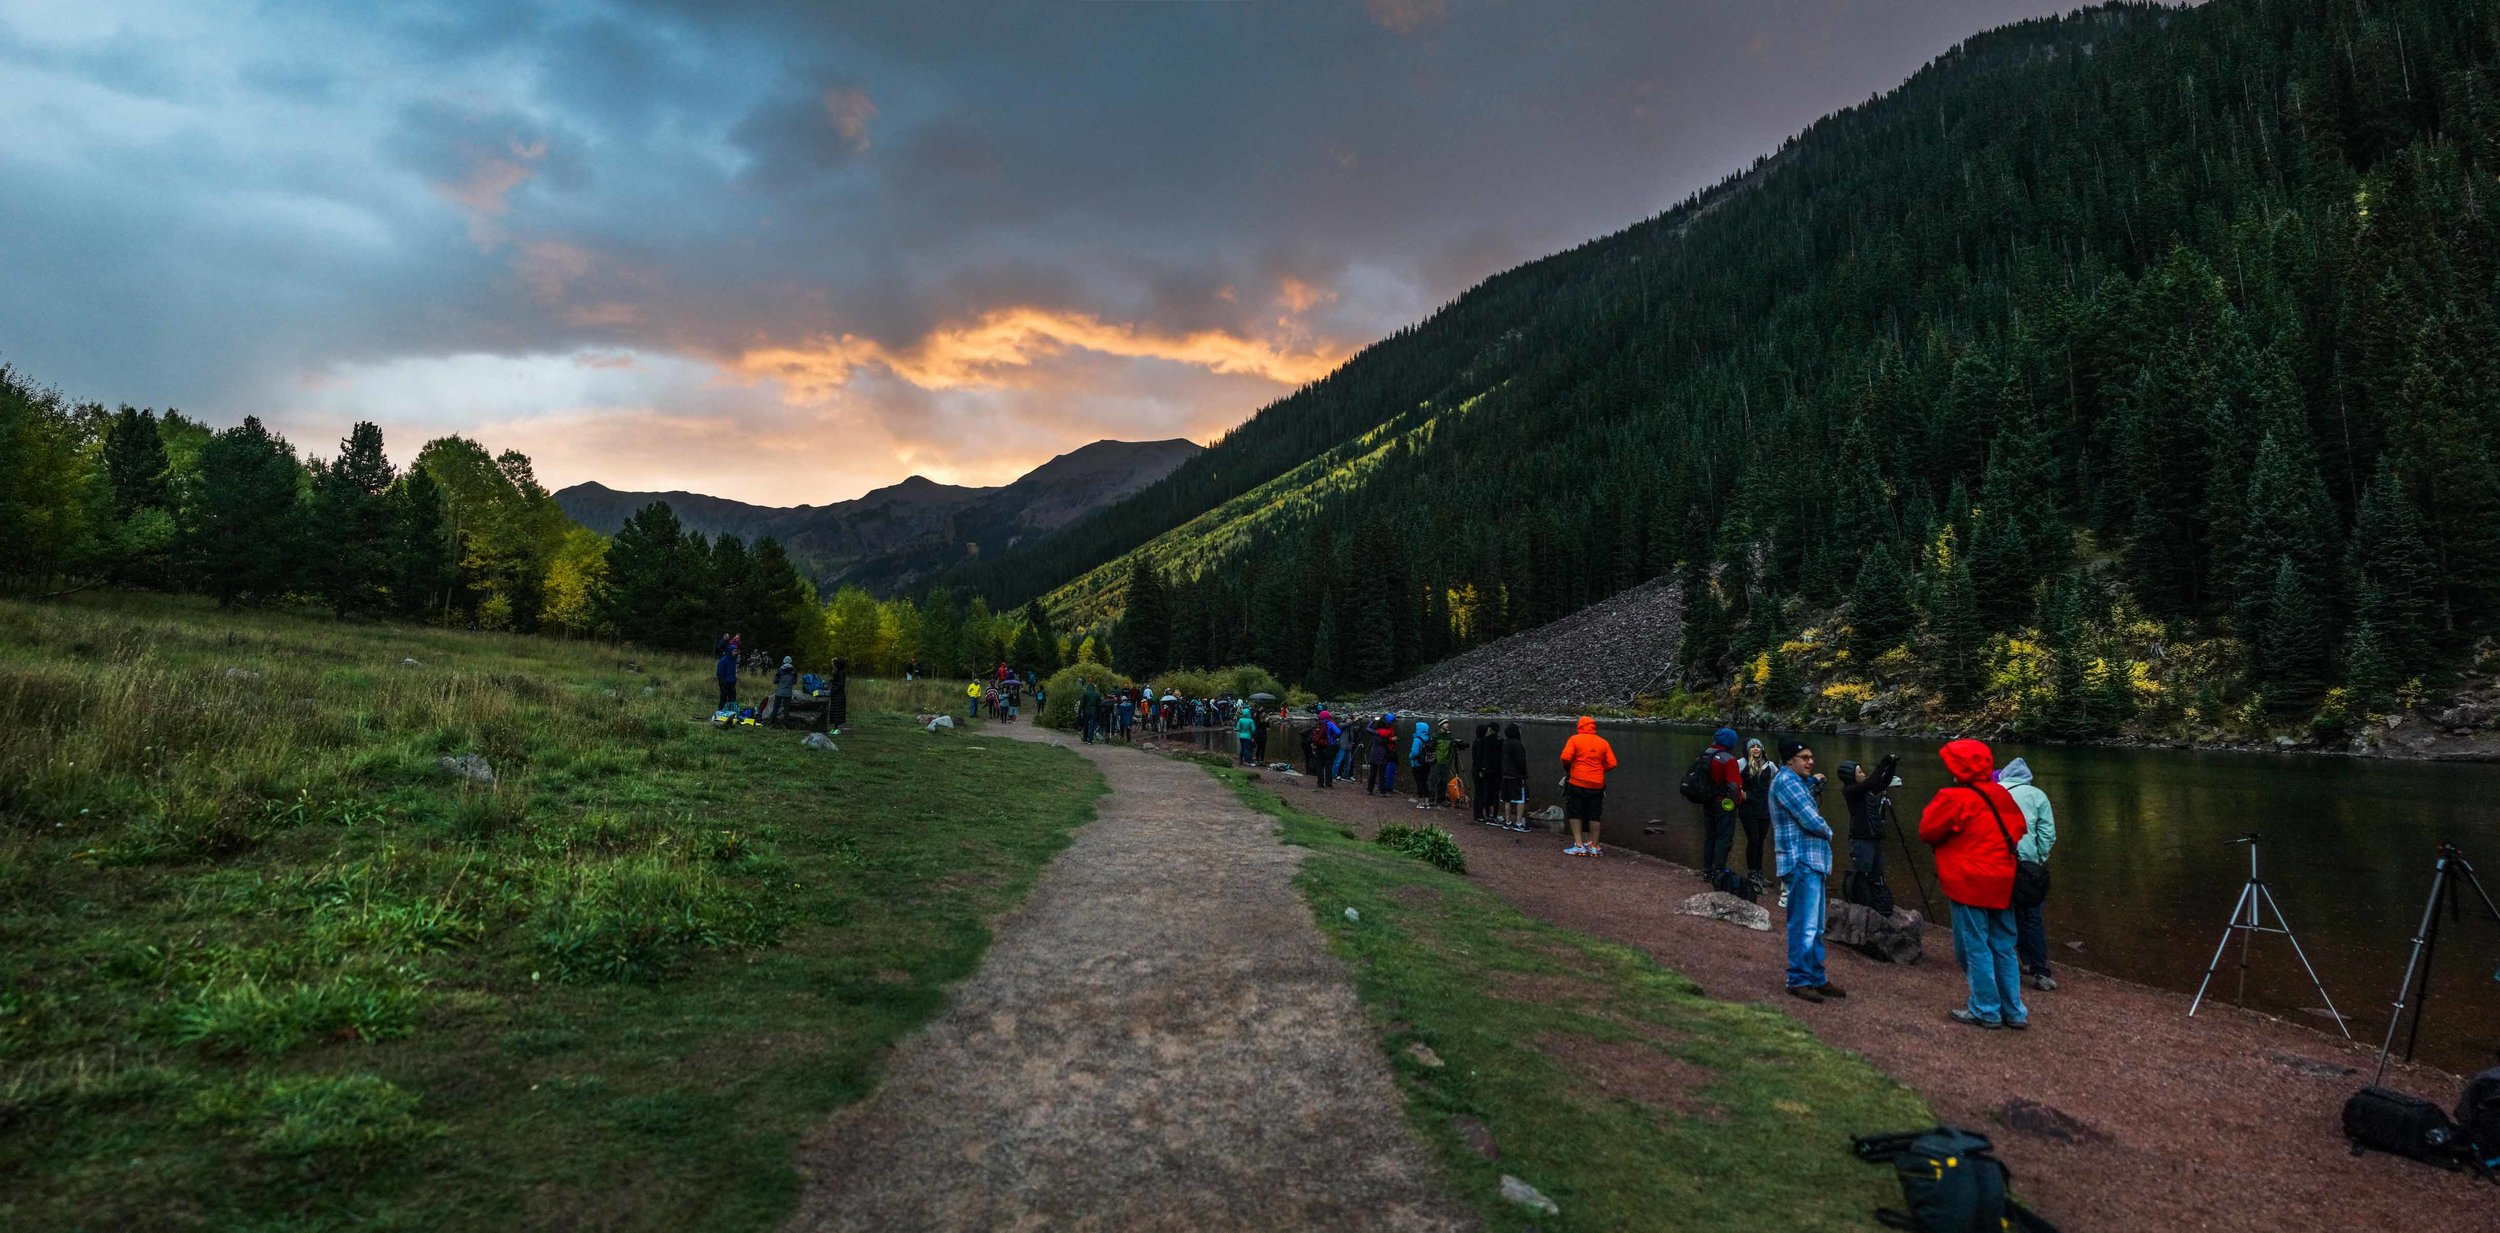 It was my first time coming to Aspen. I had no wonder why people and photographers love this place. It was freaking beautiful!